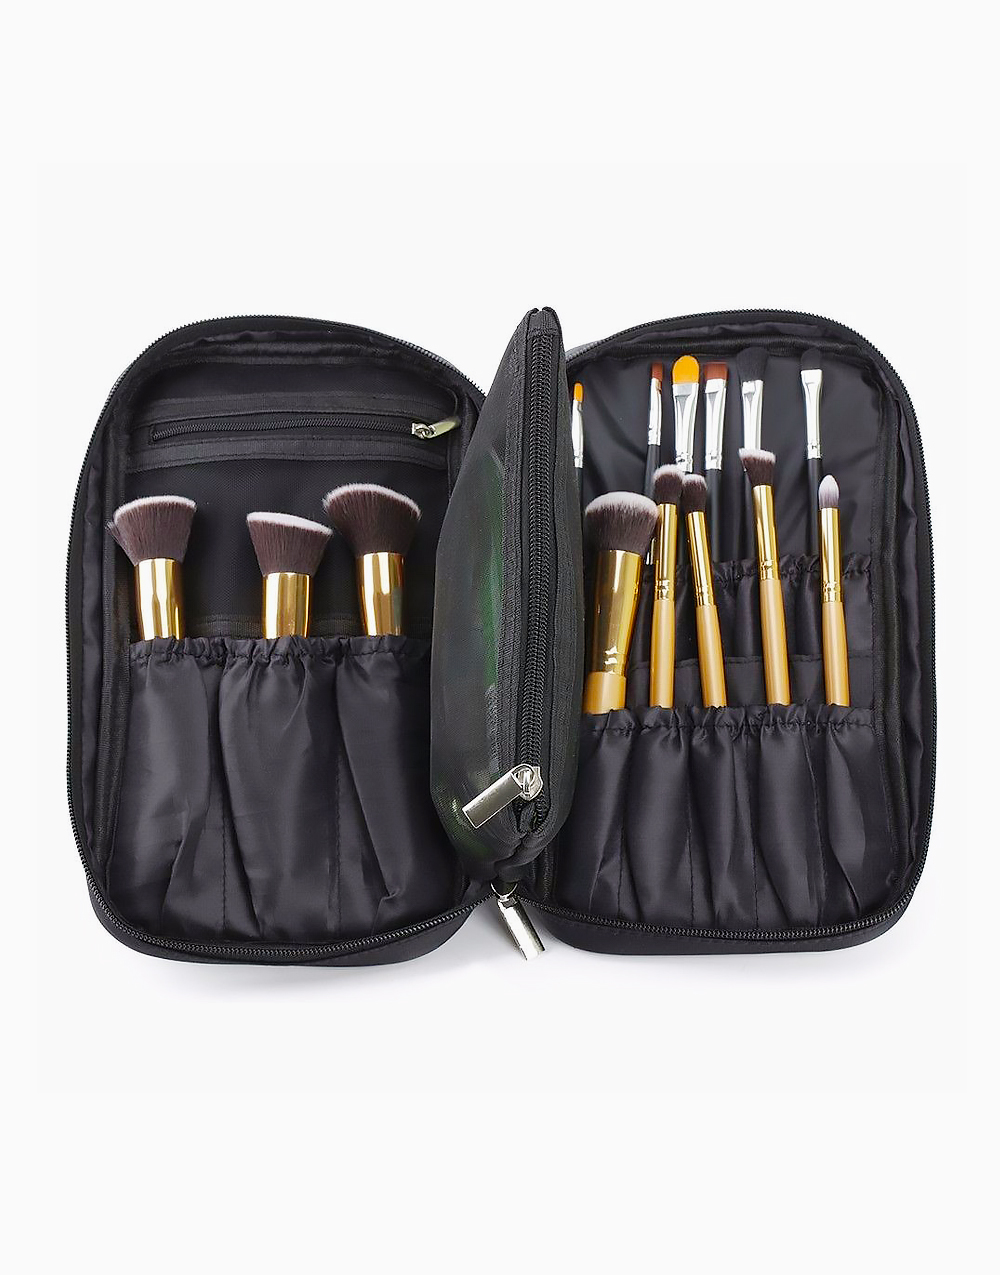 Cosmetic Case for Makeup Brushes by PRO STUDIO Beauty Exclusives